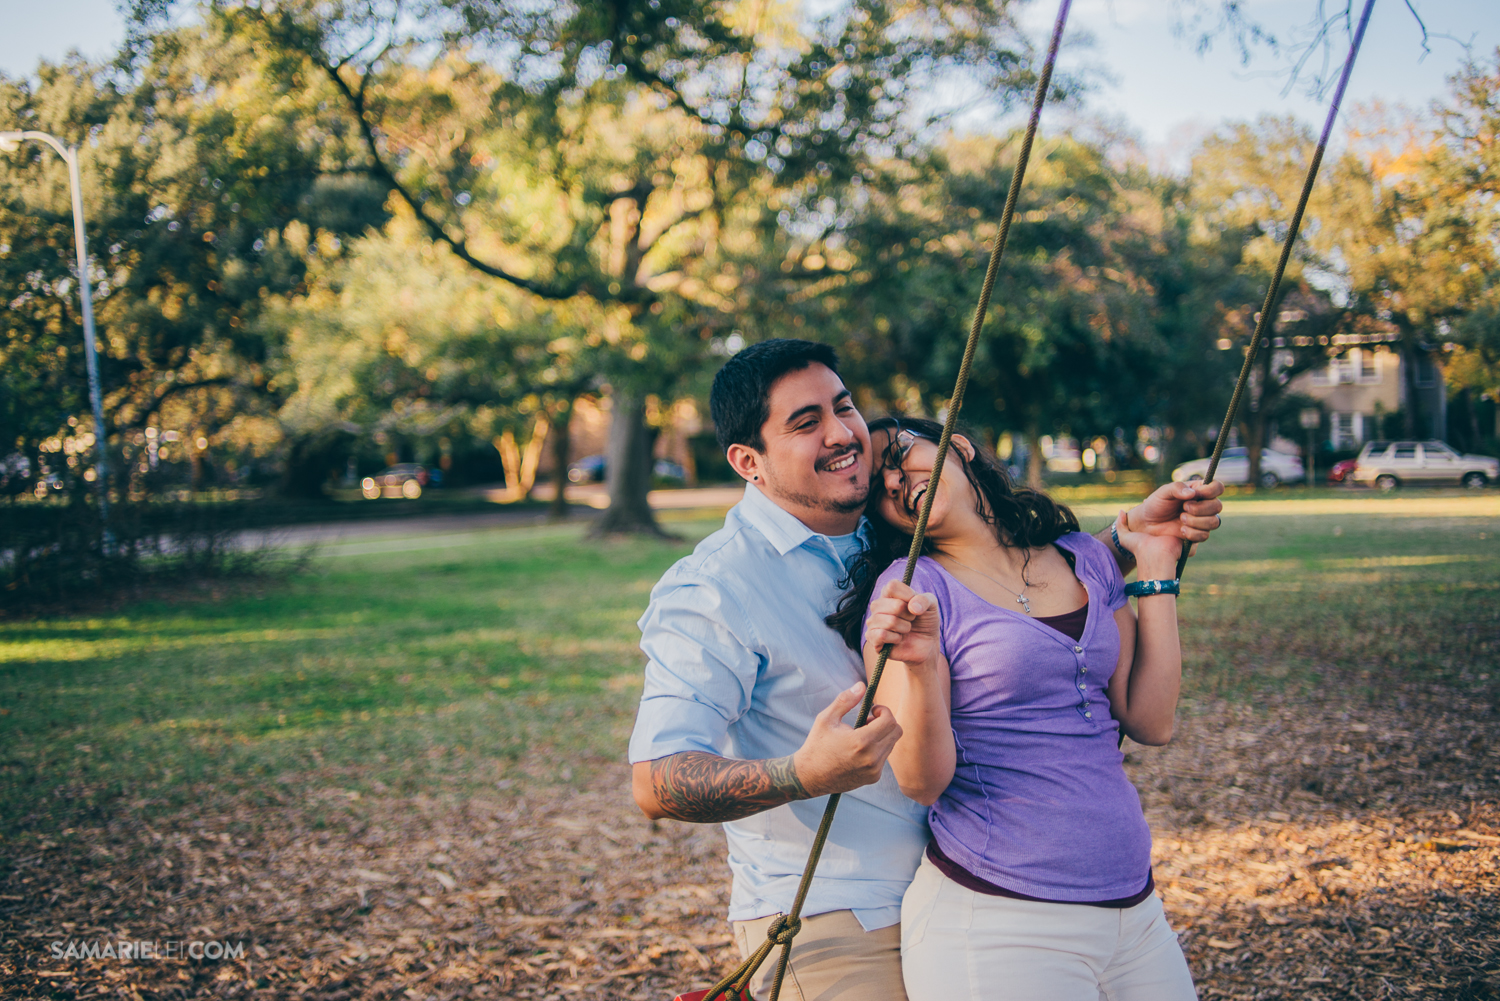 Menil park_Houston_TX_Engagement_lifestyle-05.jpg